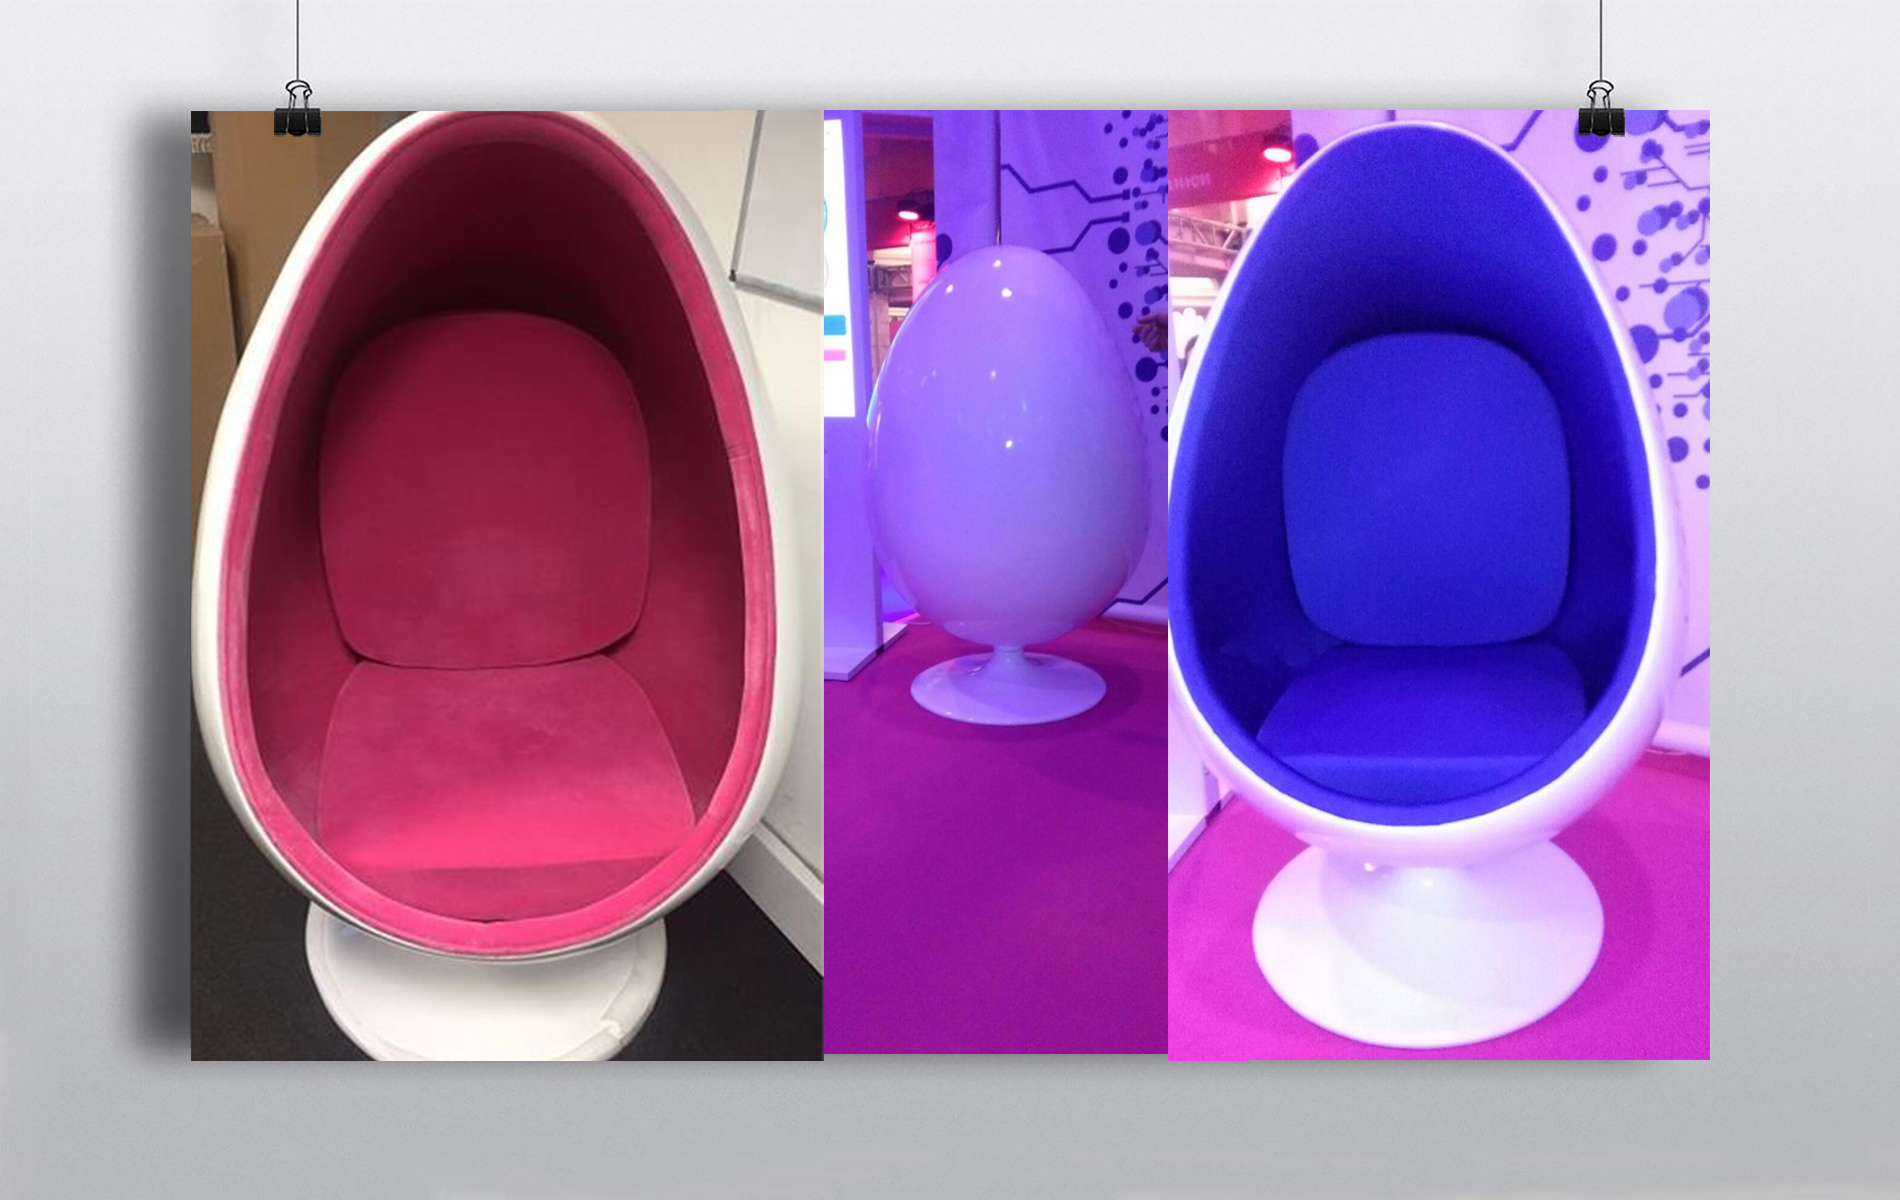 high chair egg small accent chairs with arms pod